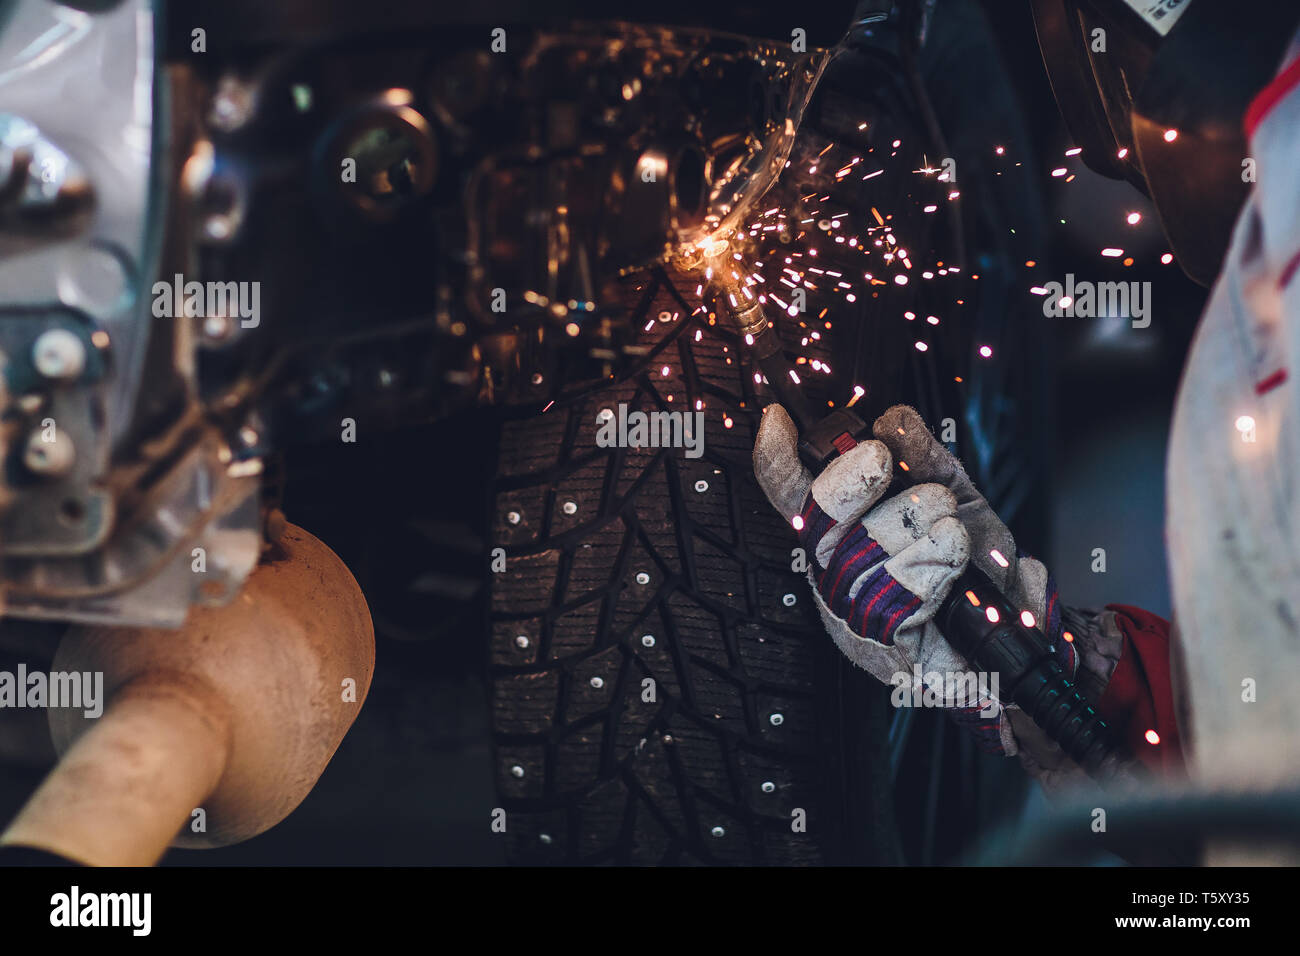 professional repairman worker in automotive industry welding metal body car with sparks. Stock Photo